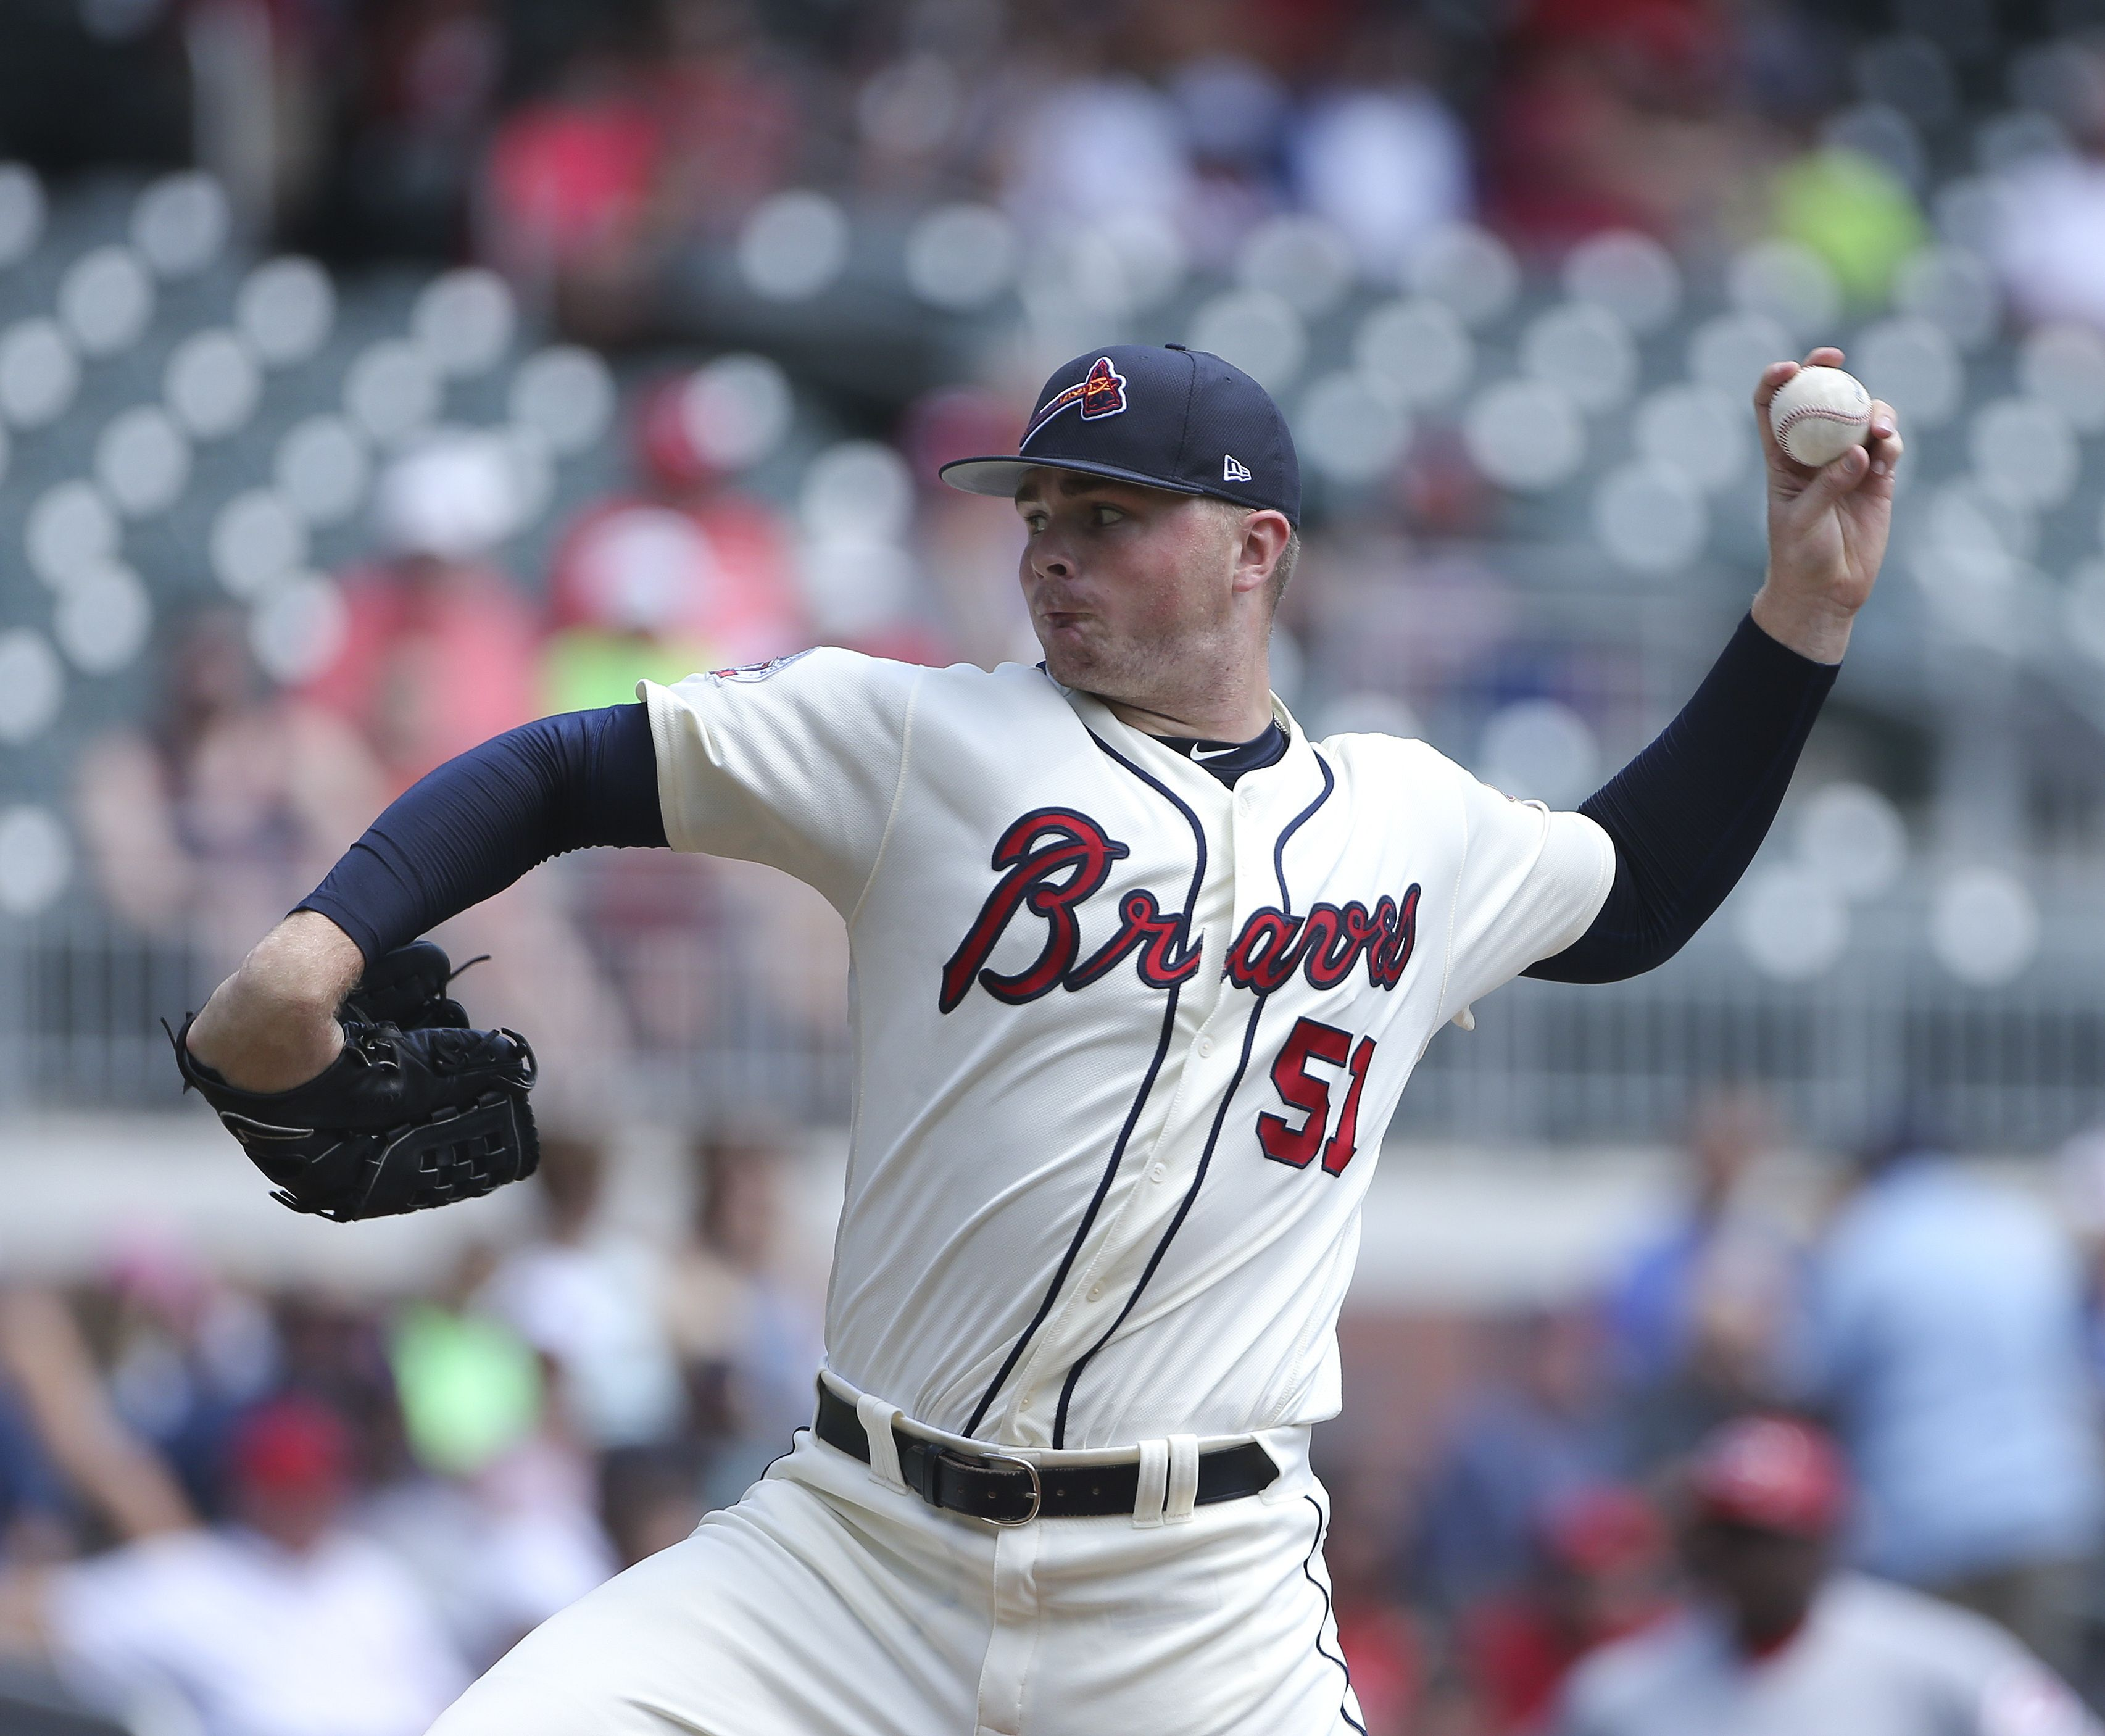 Atlanta Braves Starting Pitcher Sean Newcomb 51 Works Against Cincinnati Reds In The First Inning Of A Baseball Game Atlanta Braves Baseball Baseball Games